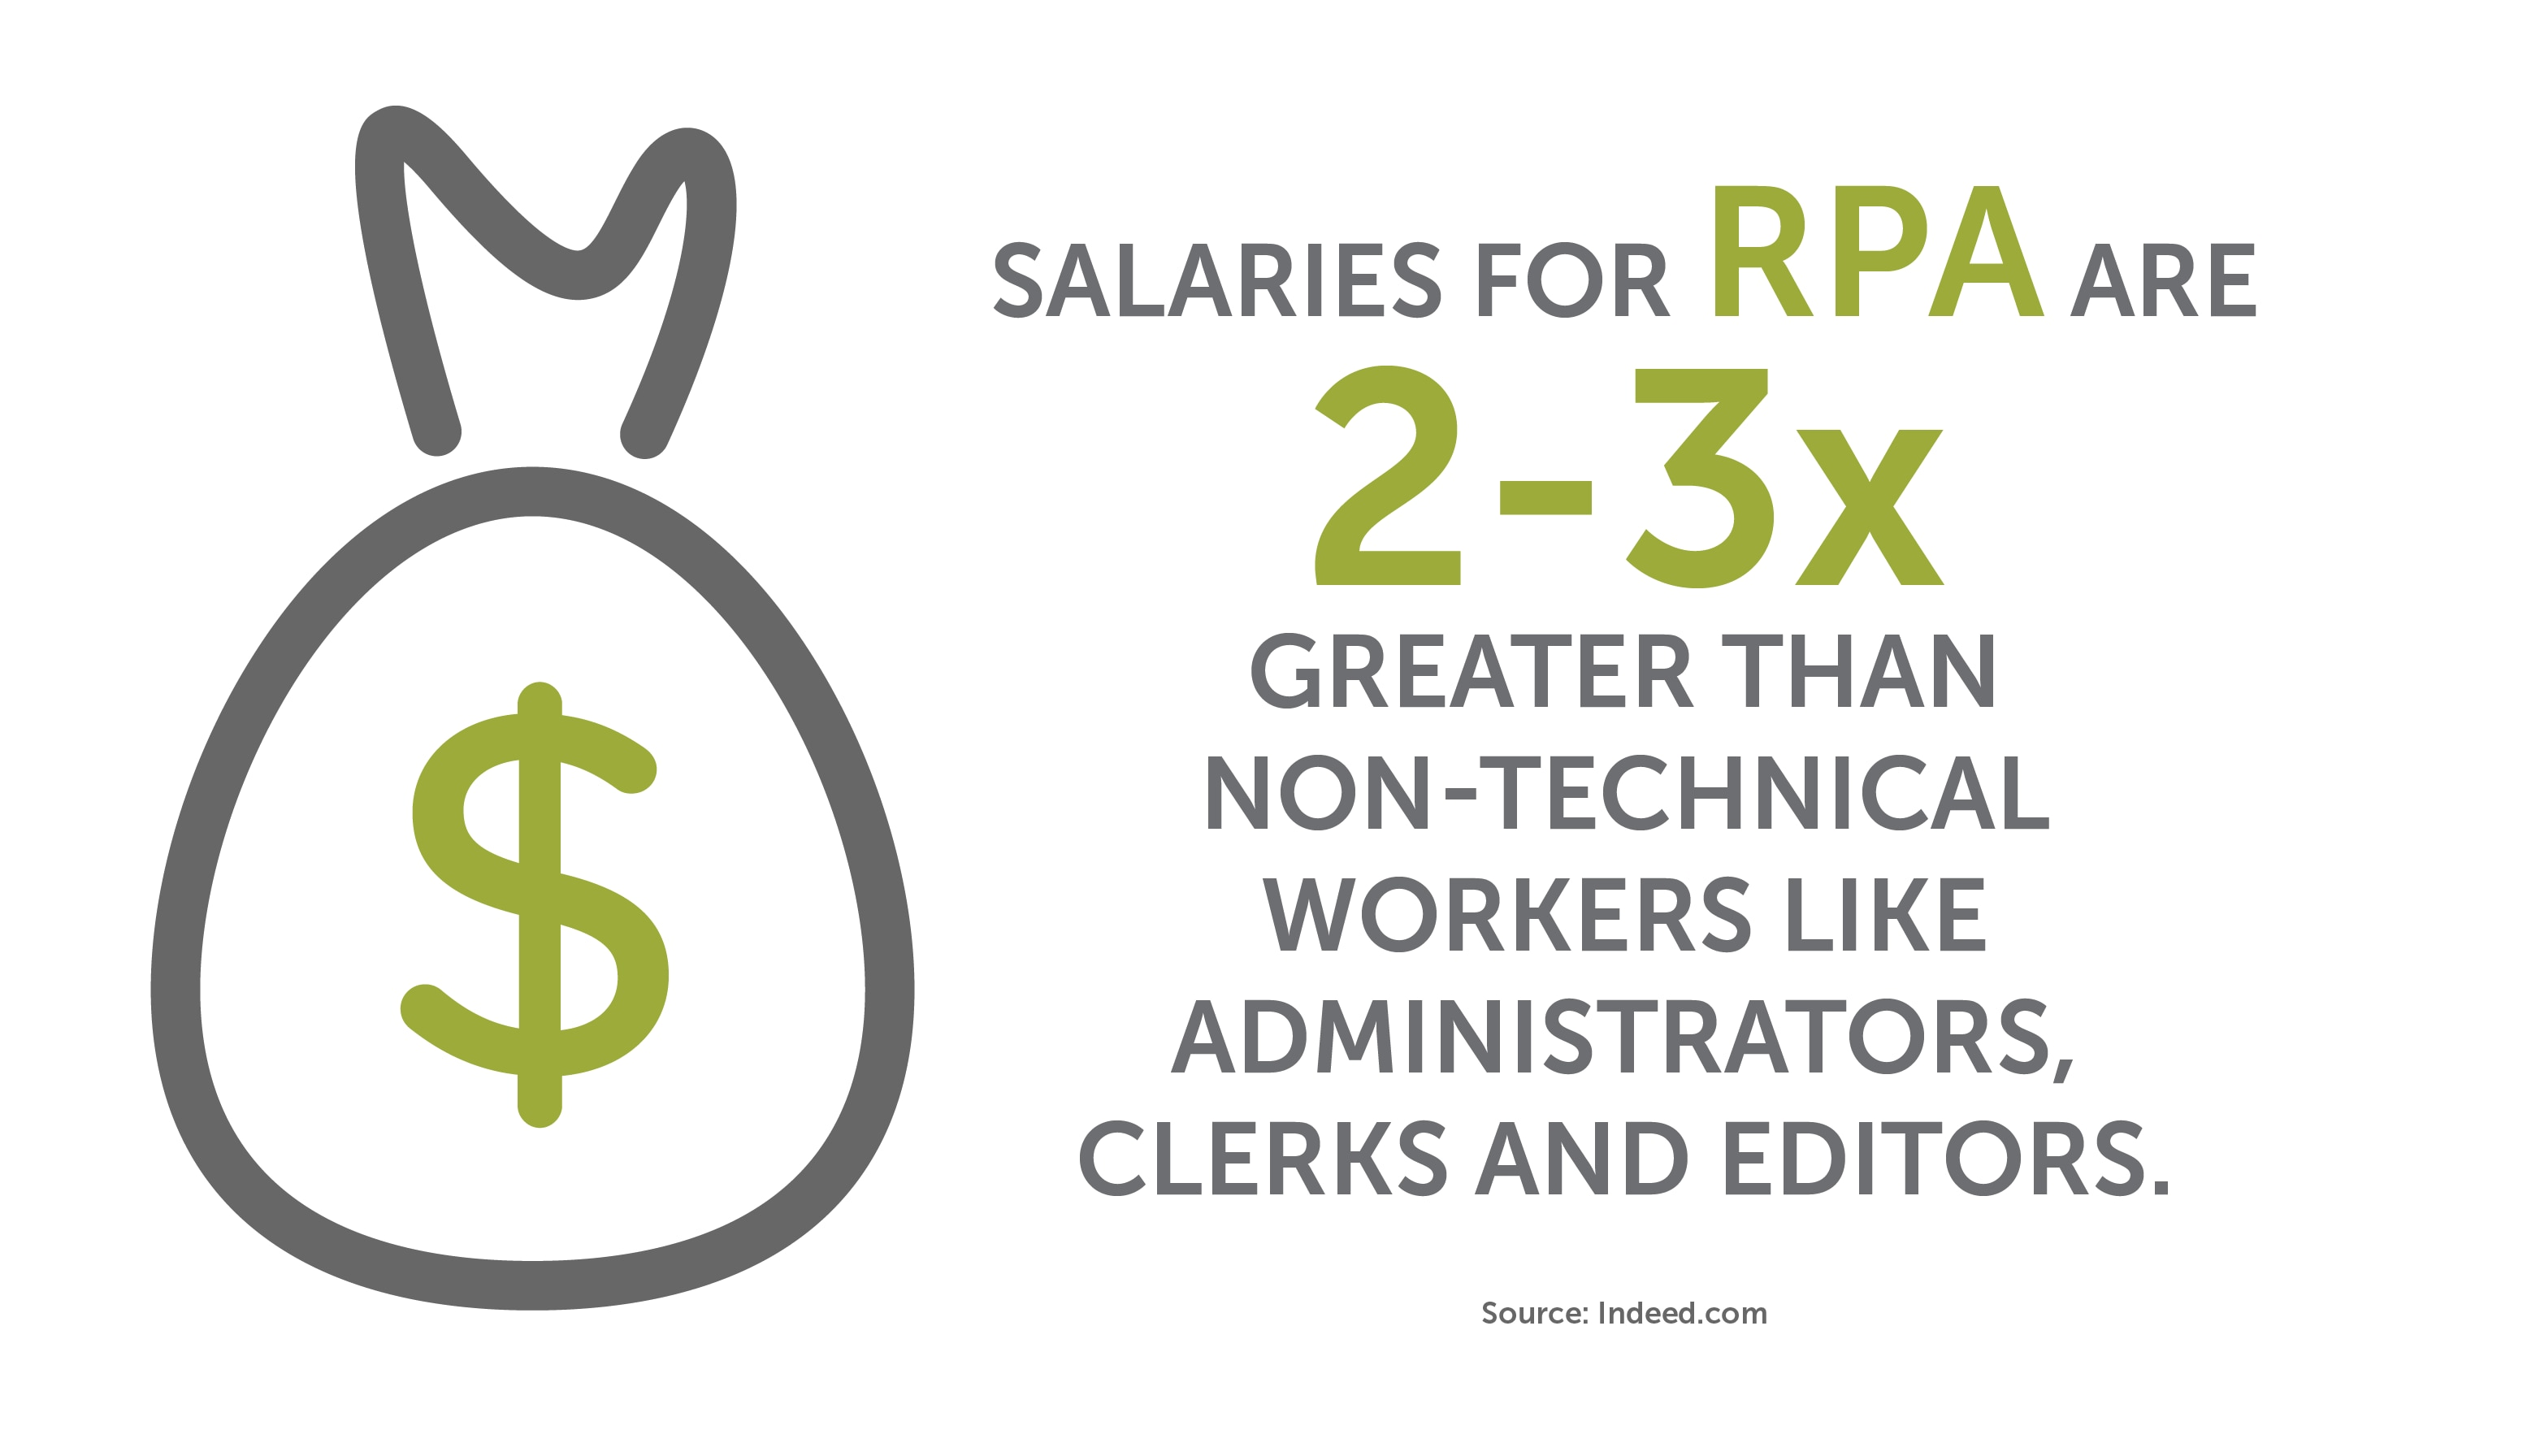 Salaries for RPA are 2 to 3 times greater than those for nontechnical workers, according to Indeed.com.